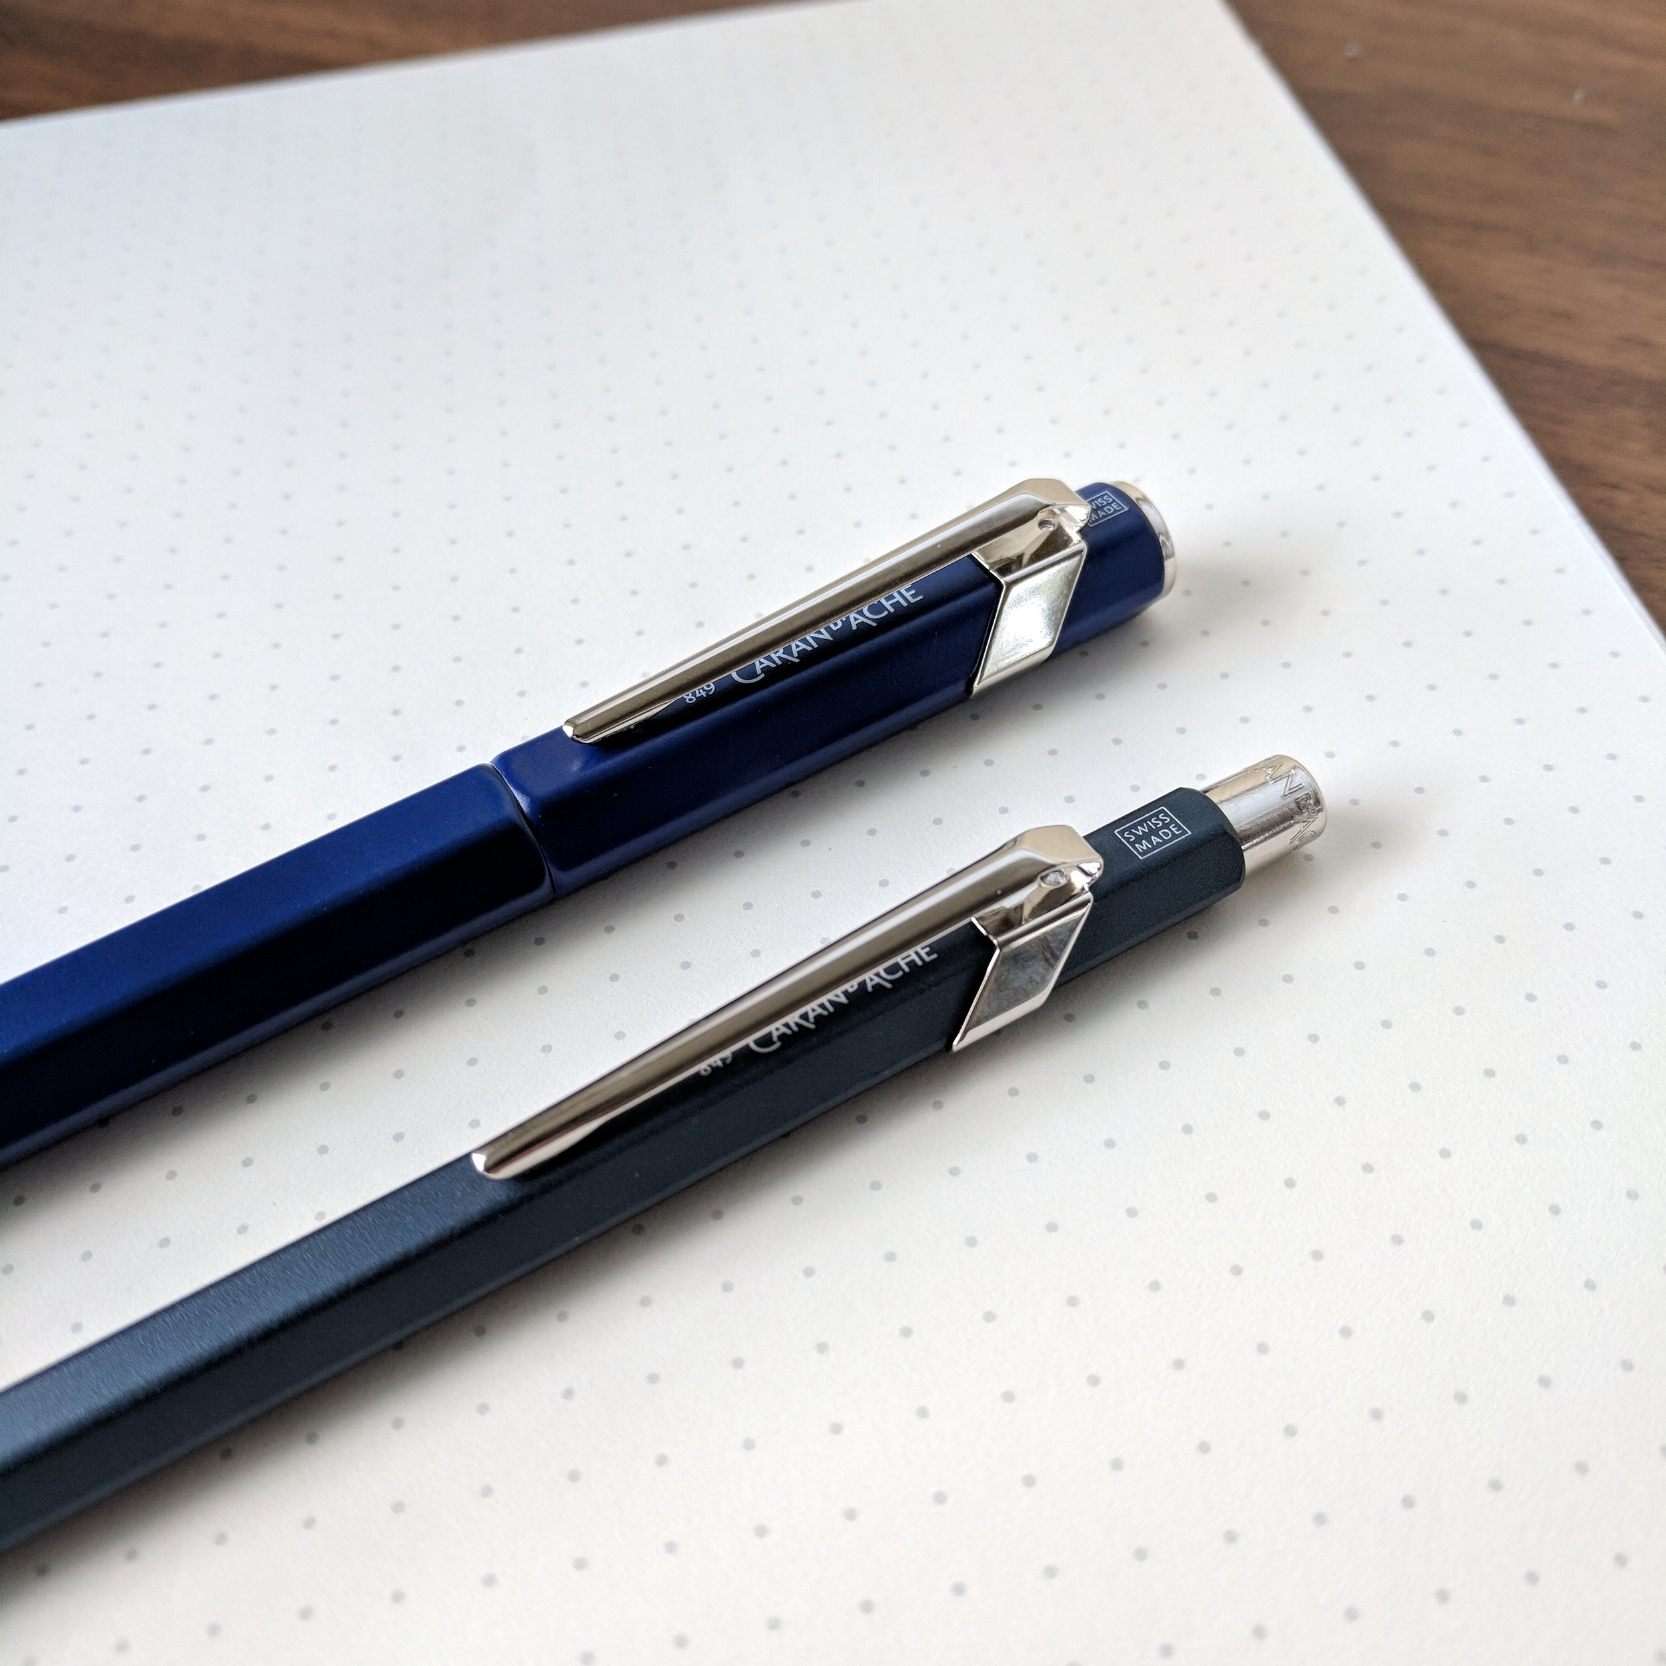 This week I reviewed my first fountain pens from Caran d'Ache. Link below!